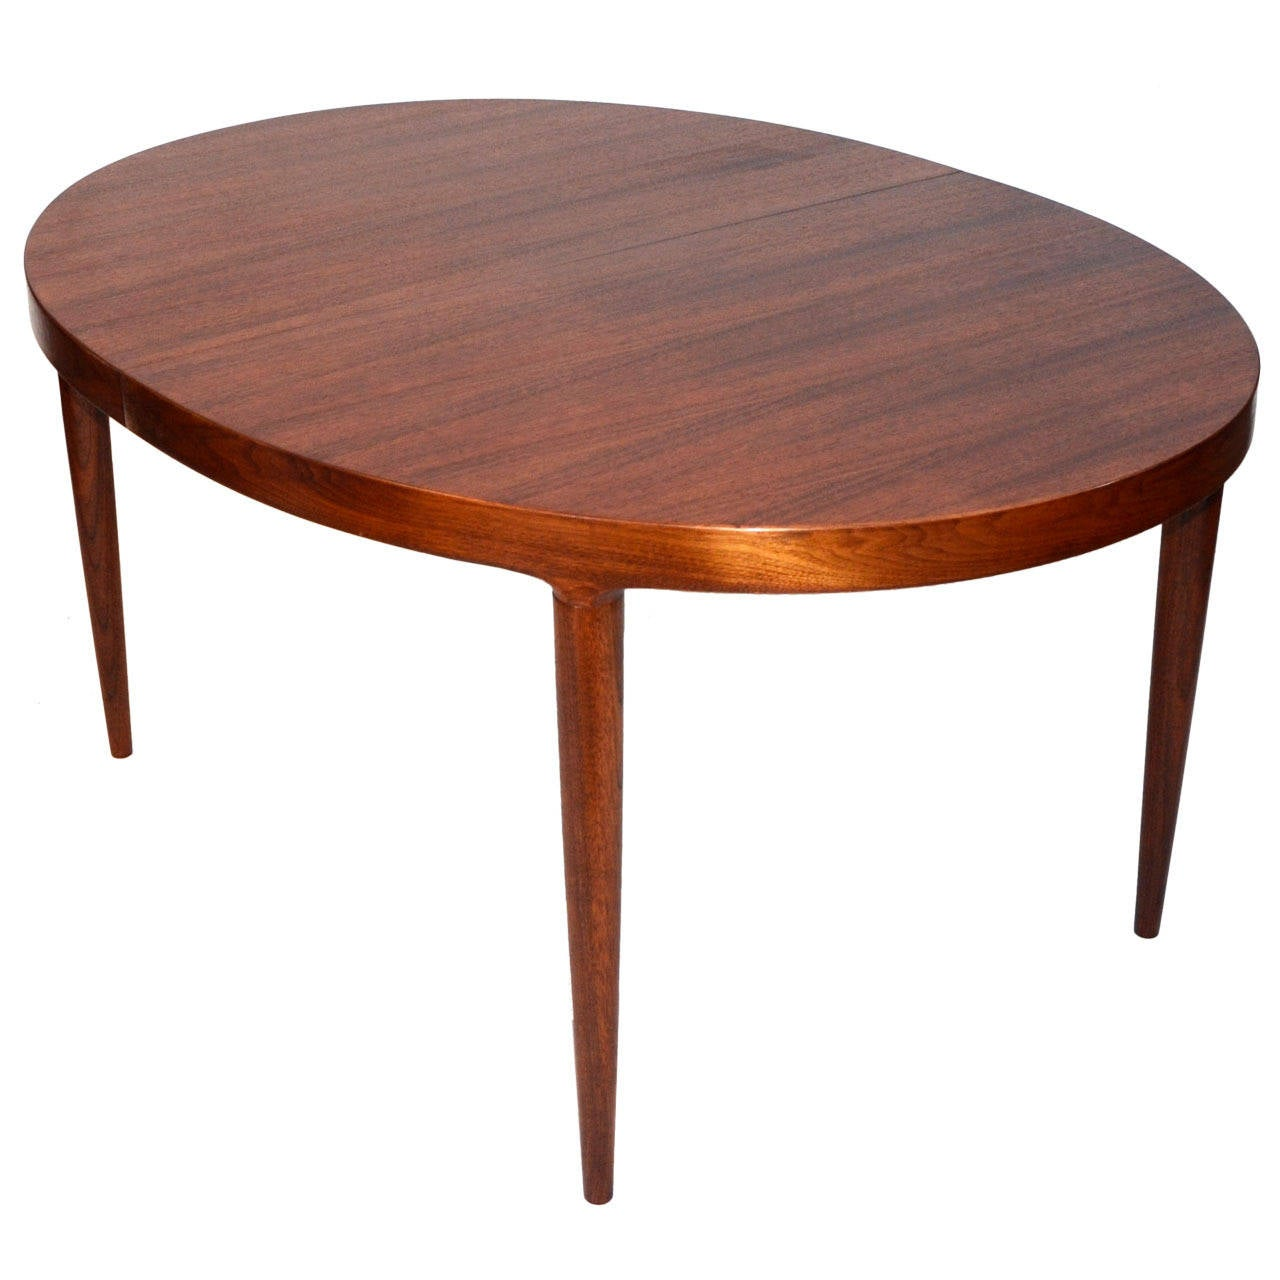 Mid century danish walnut oval dining table by moreddi co Oval dining table